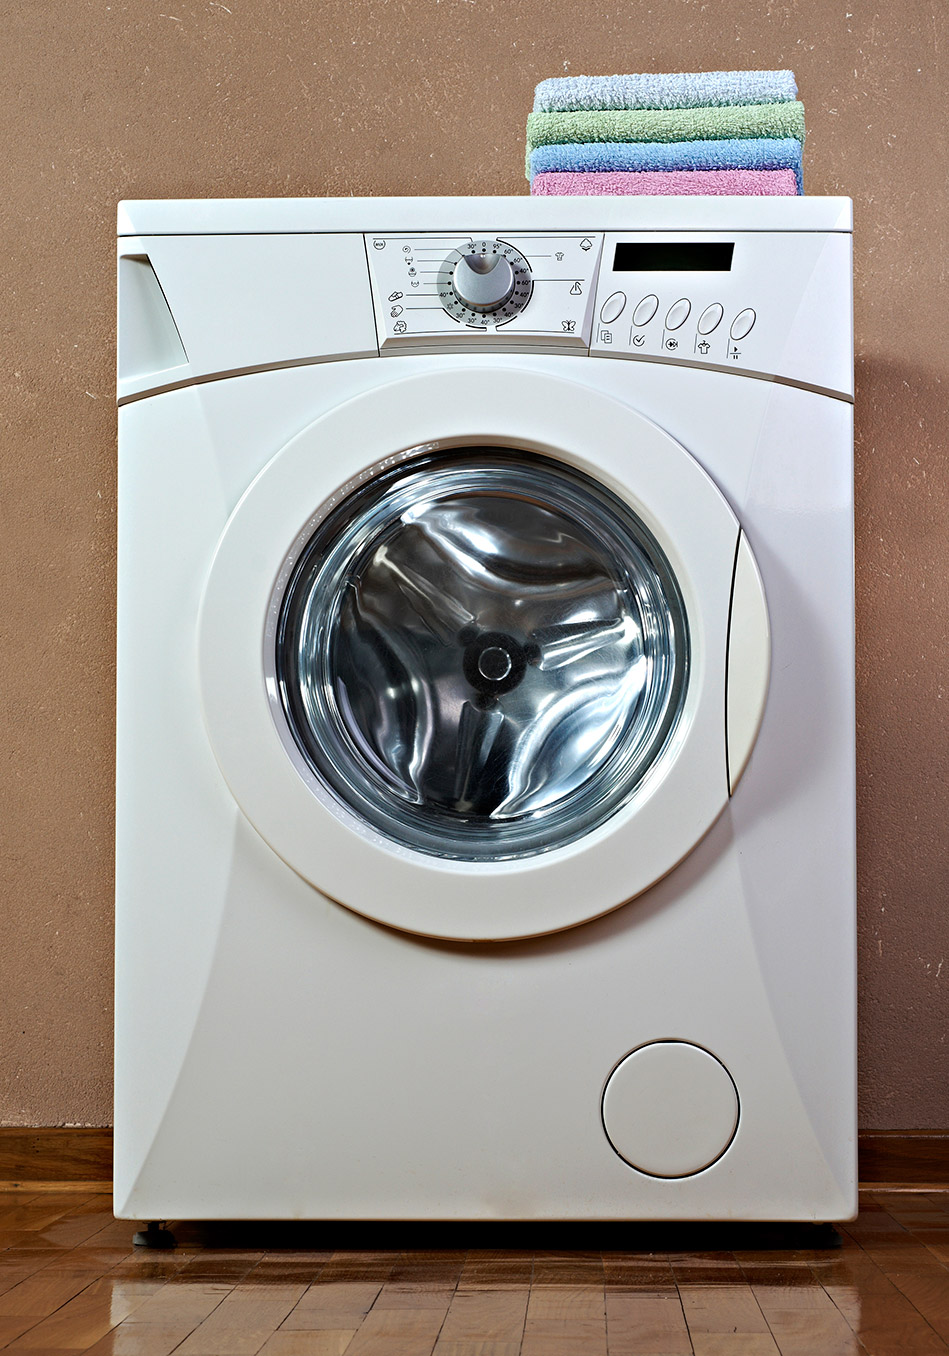 How to wash clothes correctly laundry tips - Wrong wash clothesdegrees ...